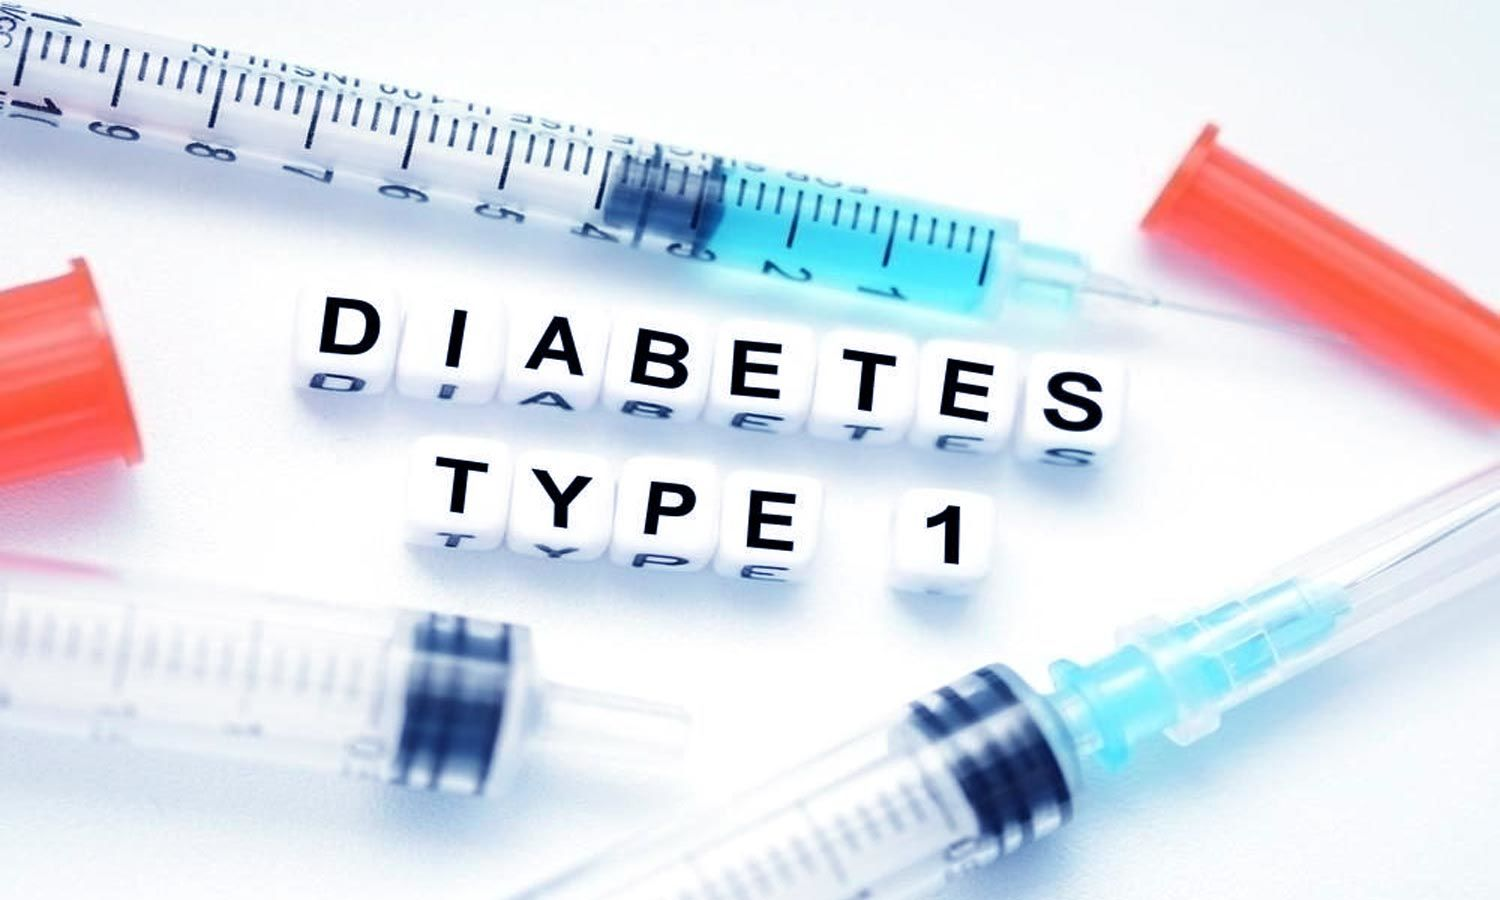 Allopurinol fails to reduce kidney complications in type 1 diabetes: Study